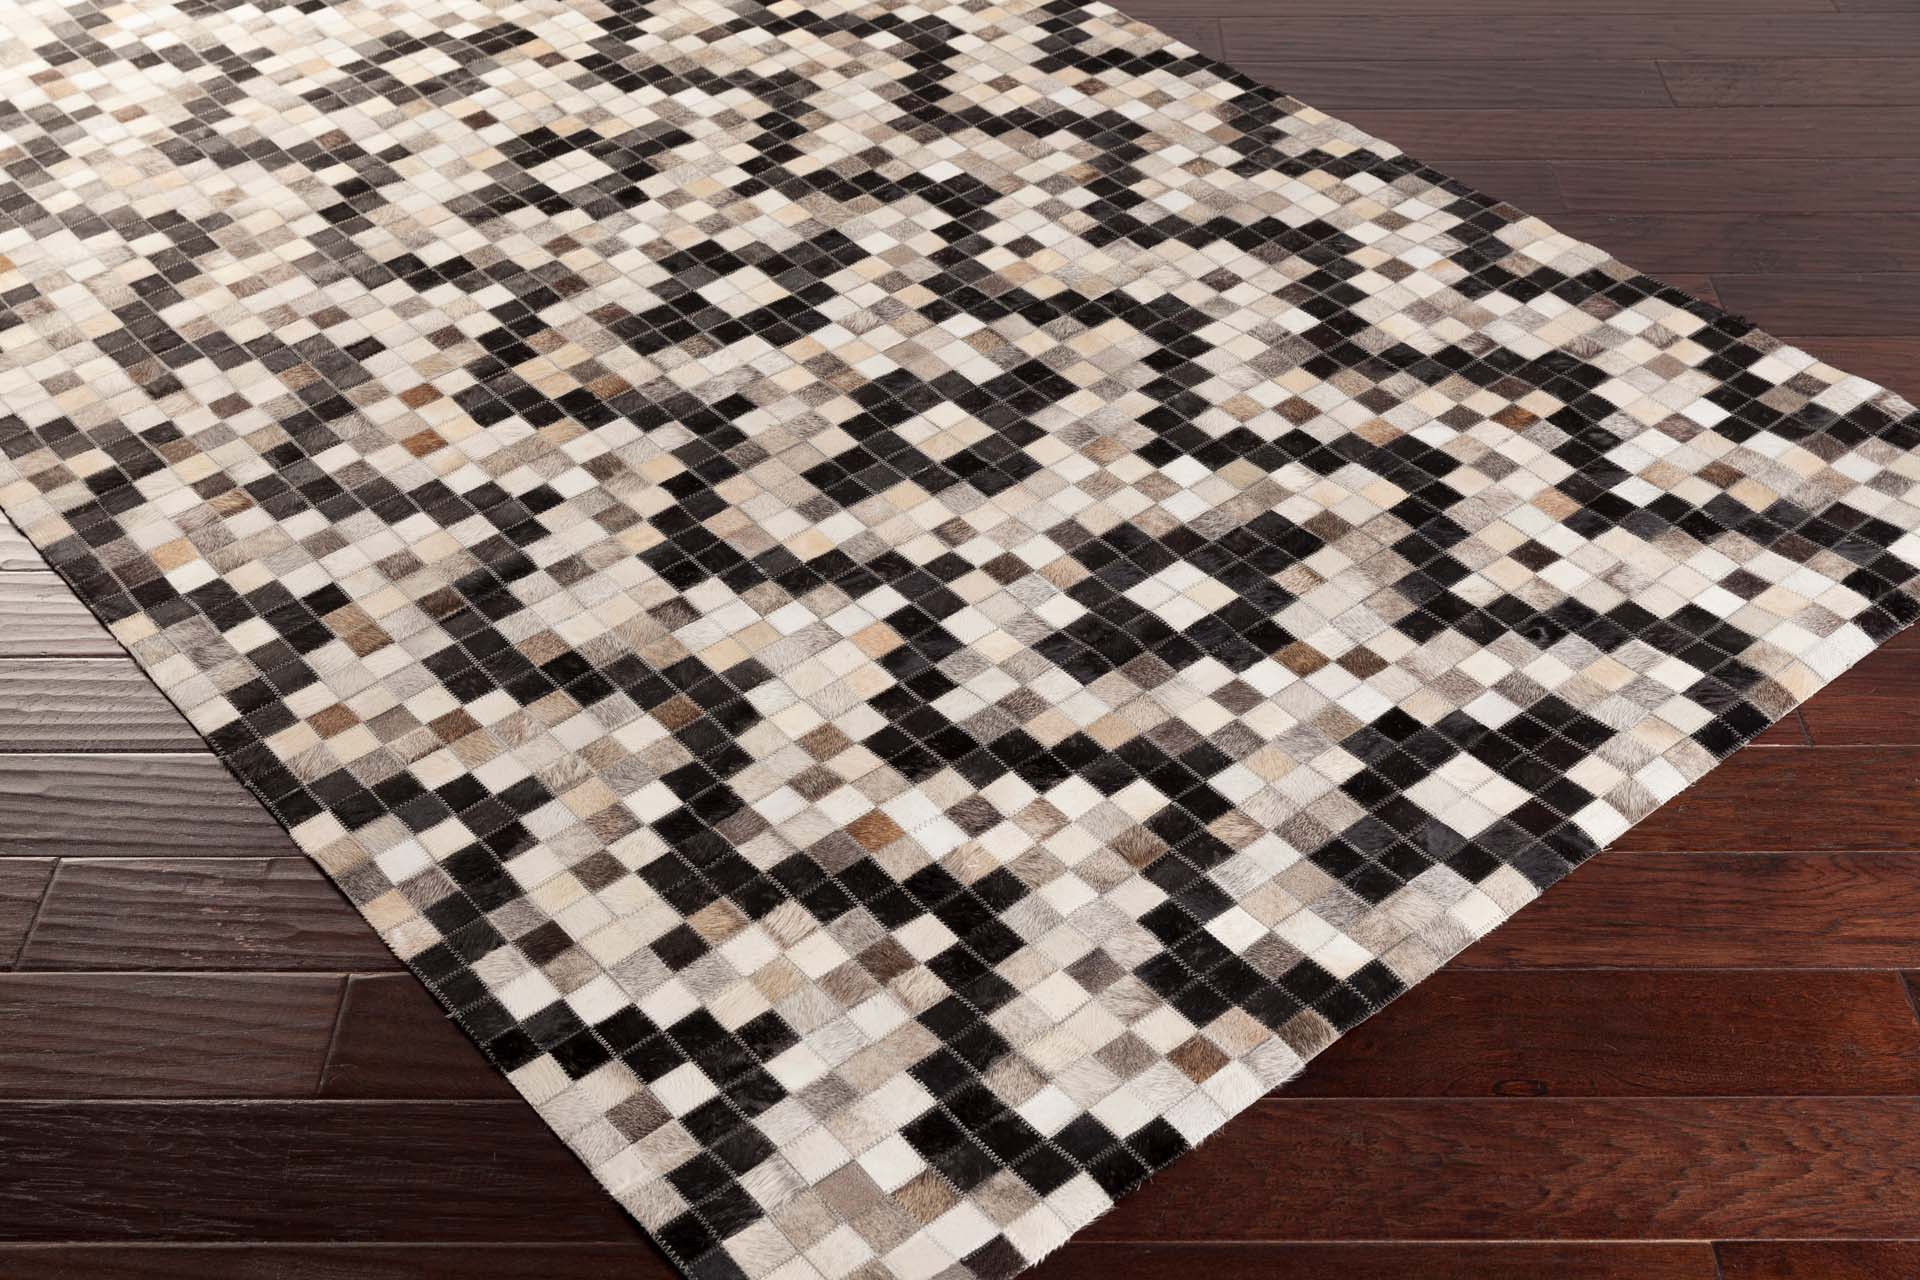 Handmade hair on hide rug from India with intricate black and gray pattern on wood floor